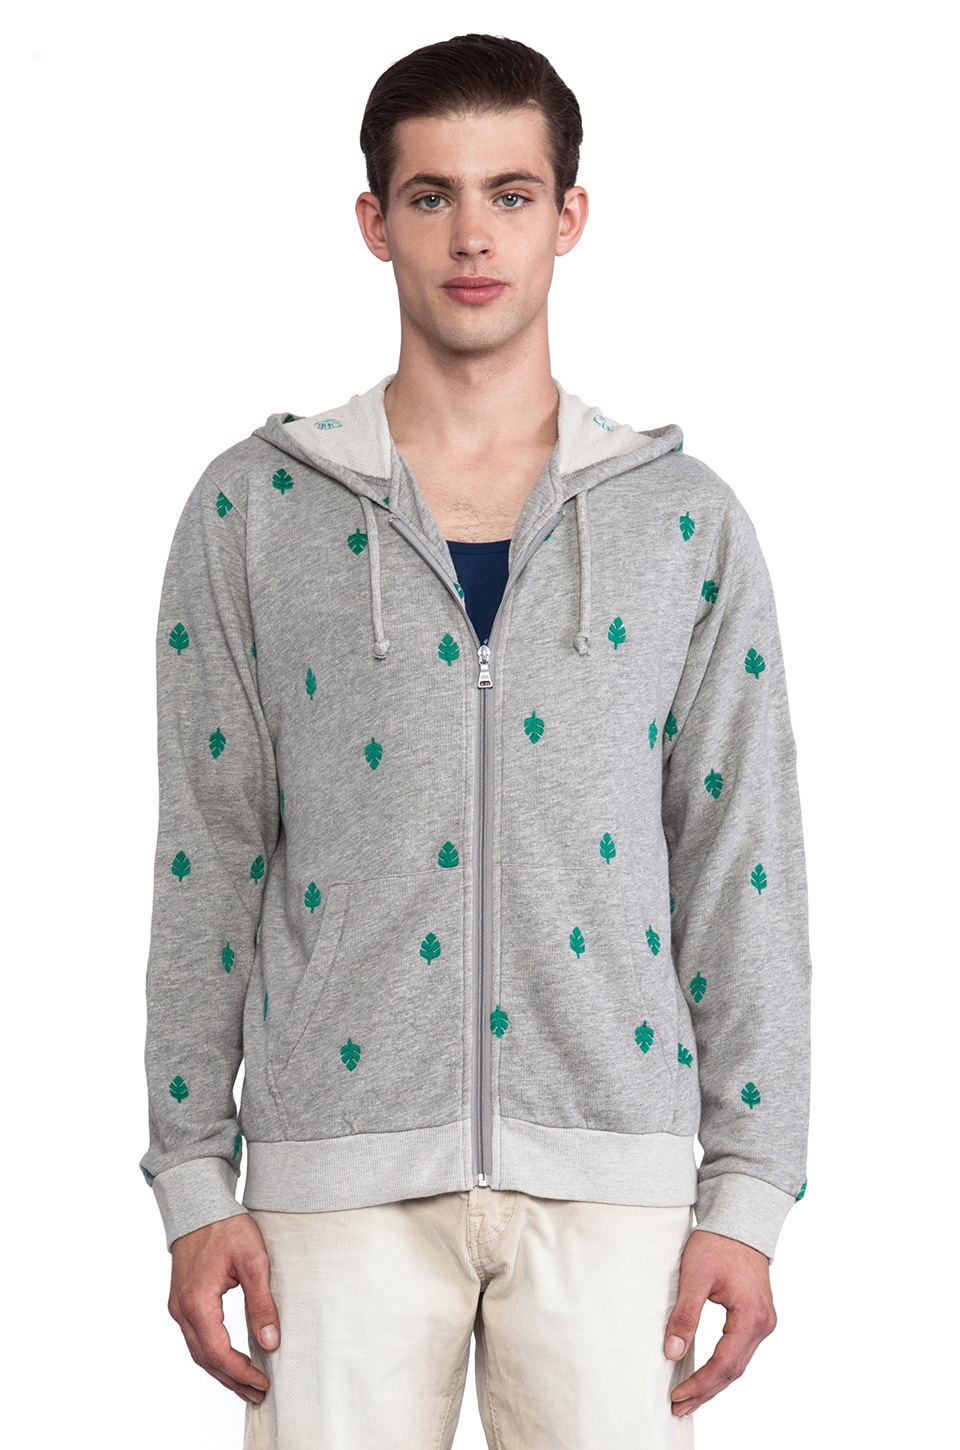 Burkman Bros. Full Zip Hoodie in Grey & Palm